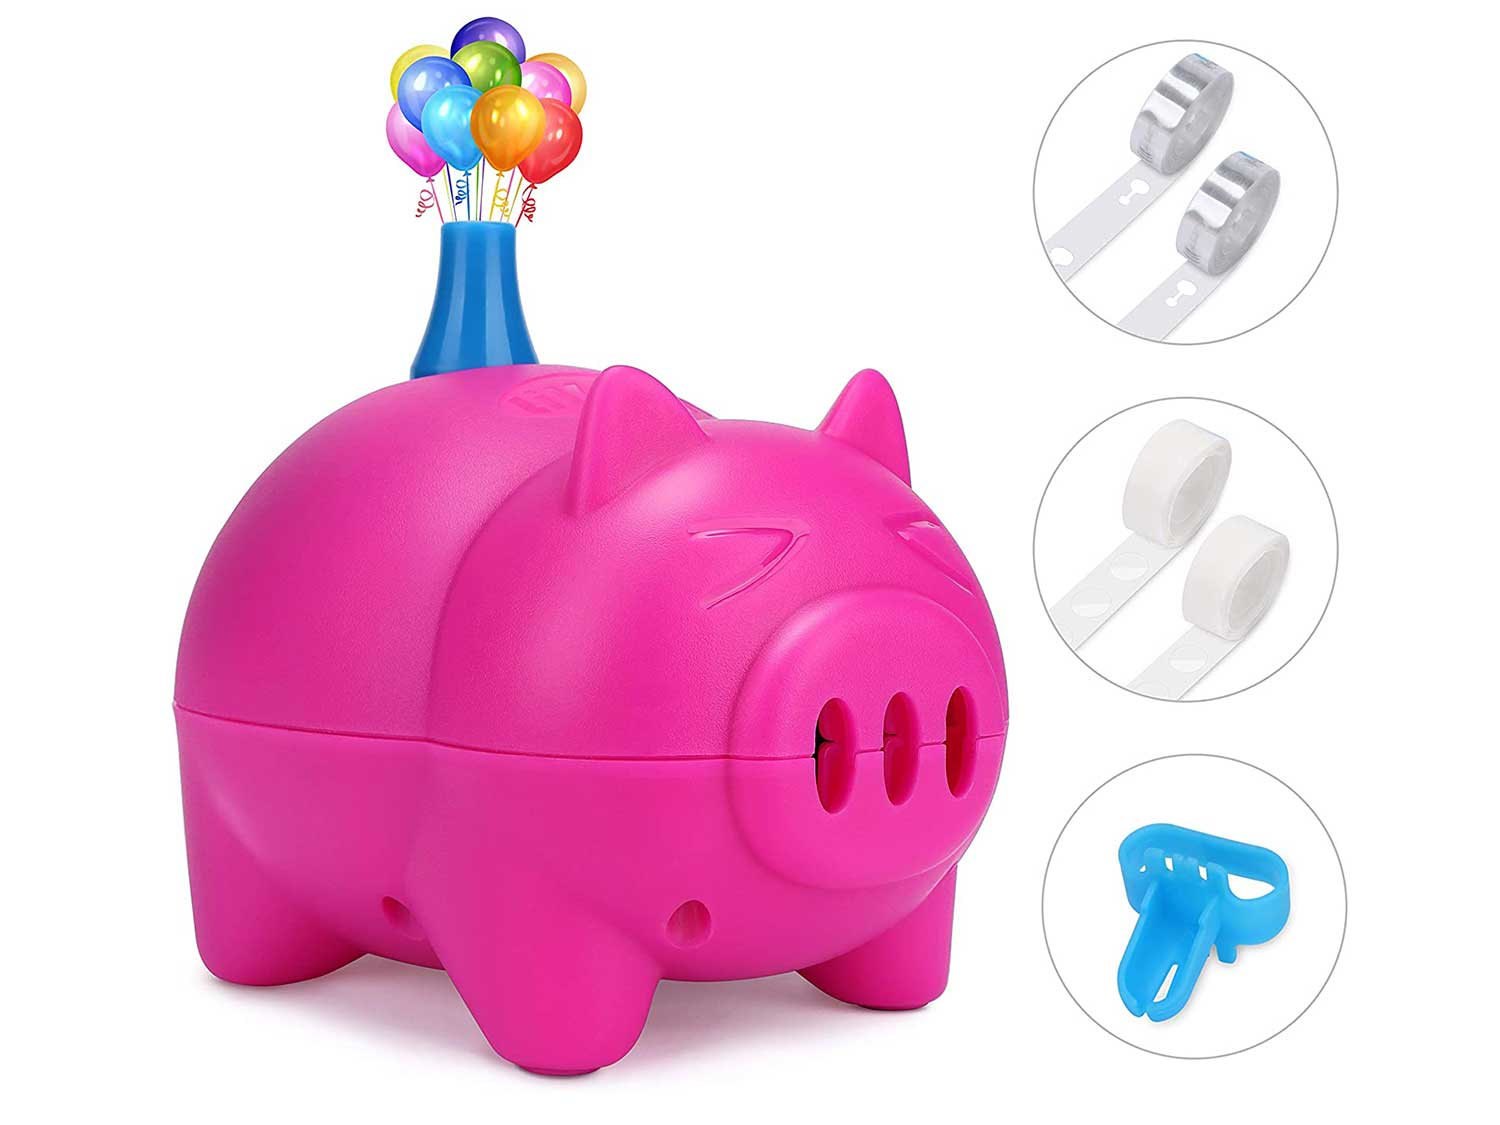 LIKEE Electric Balloon Pump Portable Balloon Inflator Air Blower with Balloon Arch &Garland Kit for Party Decoration(Rose Red)